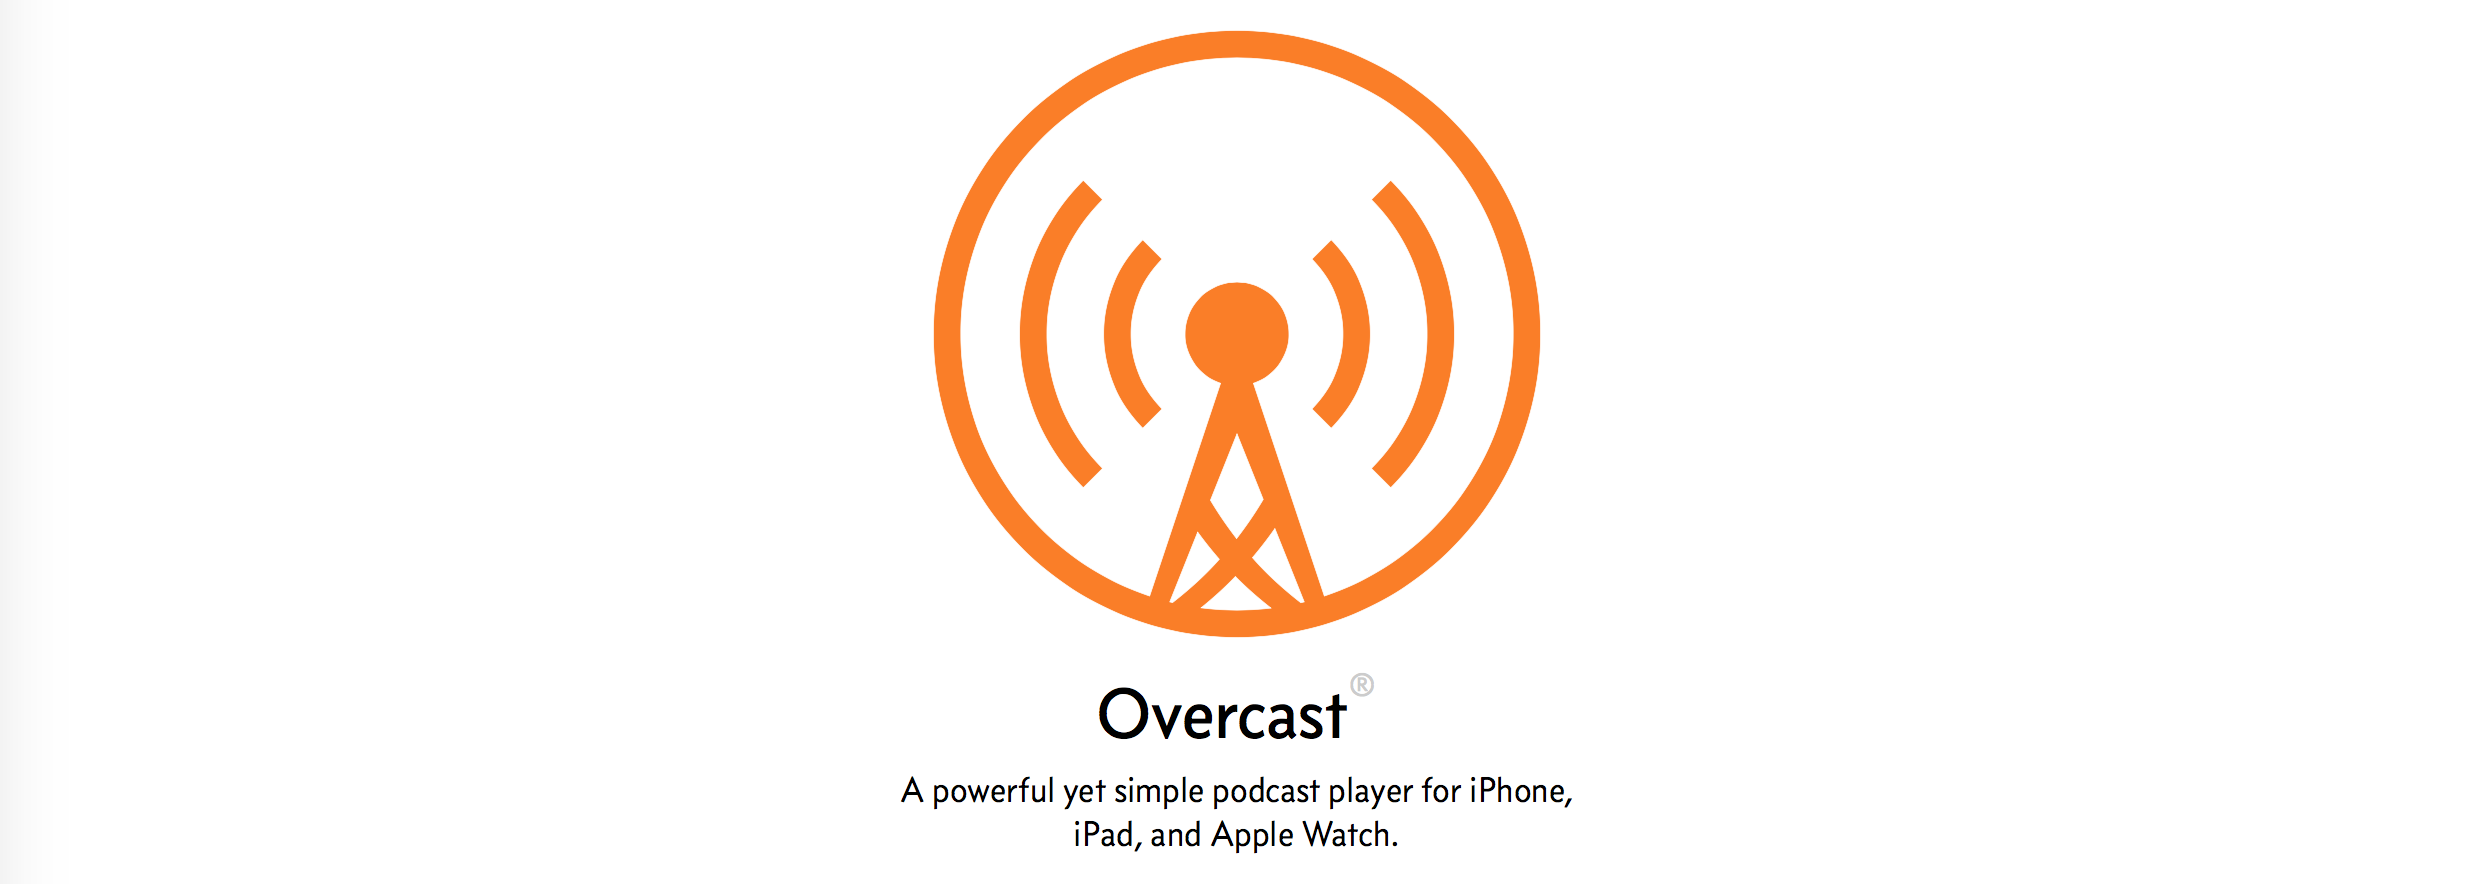 Overcast is the best podcast app for Apple Watch | Watchaware